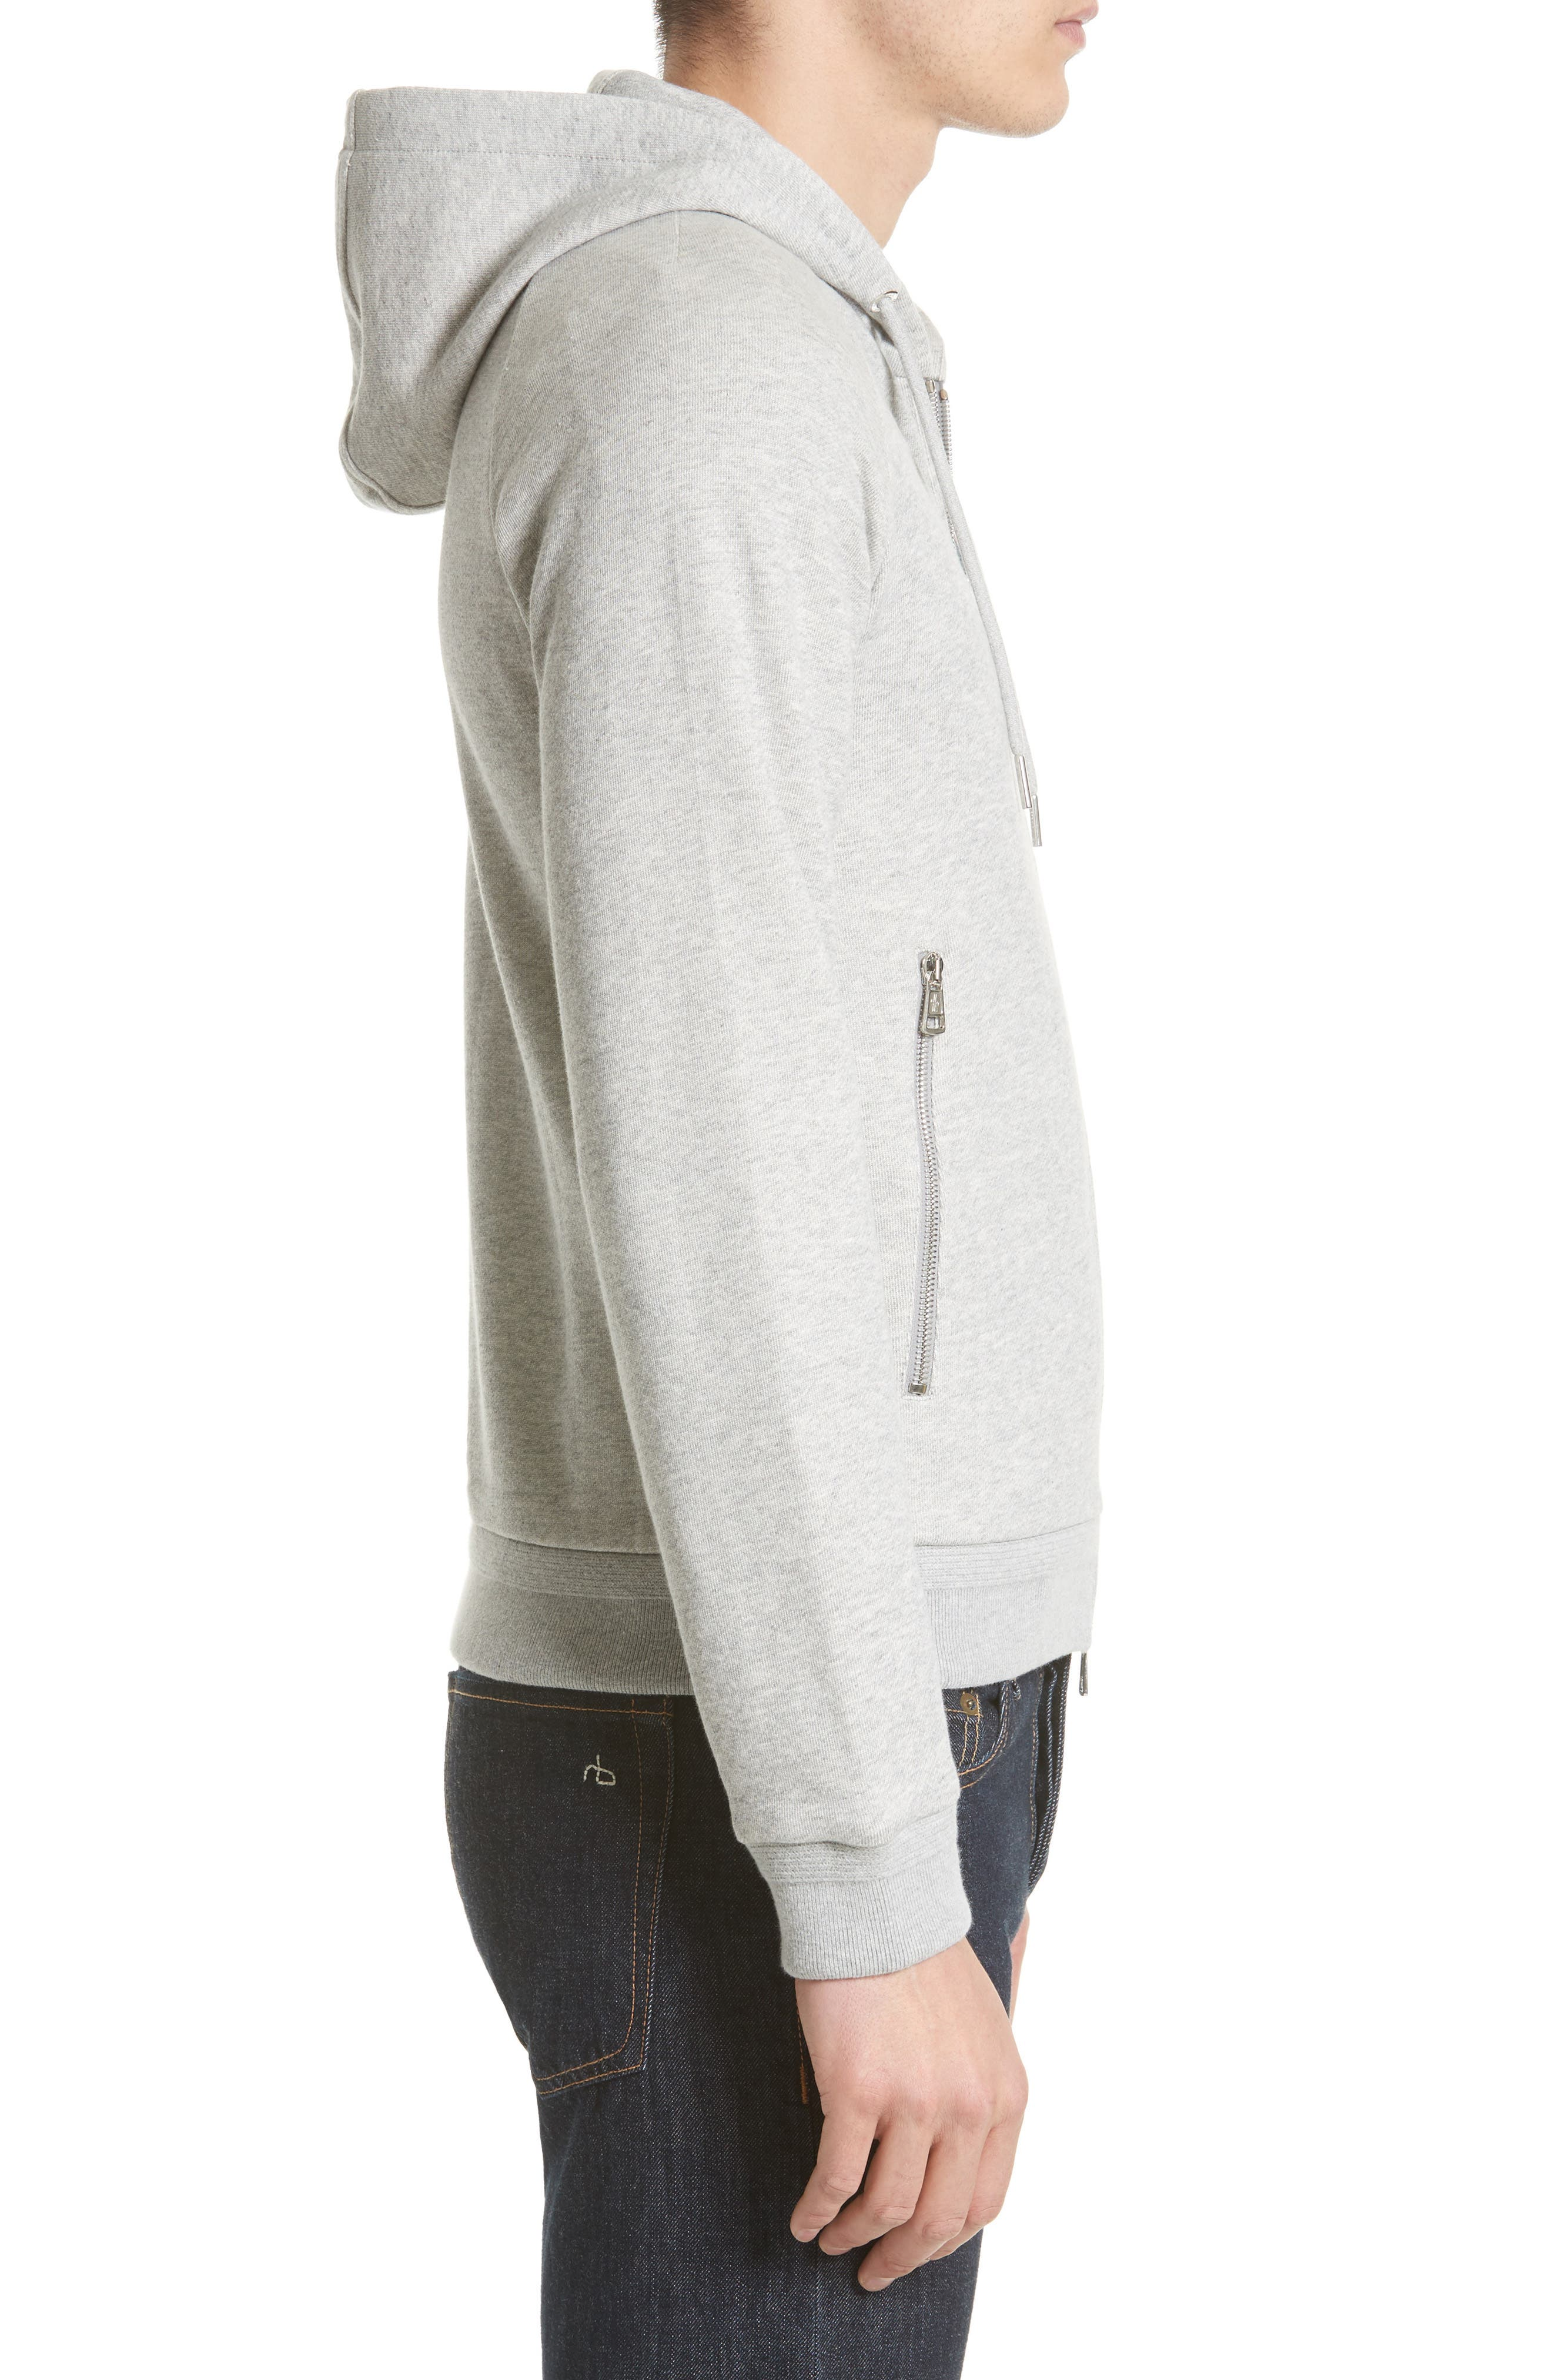 Three Bells Hoodie,                             Alternate thumbnail 3, color,                             Dark Grey